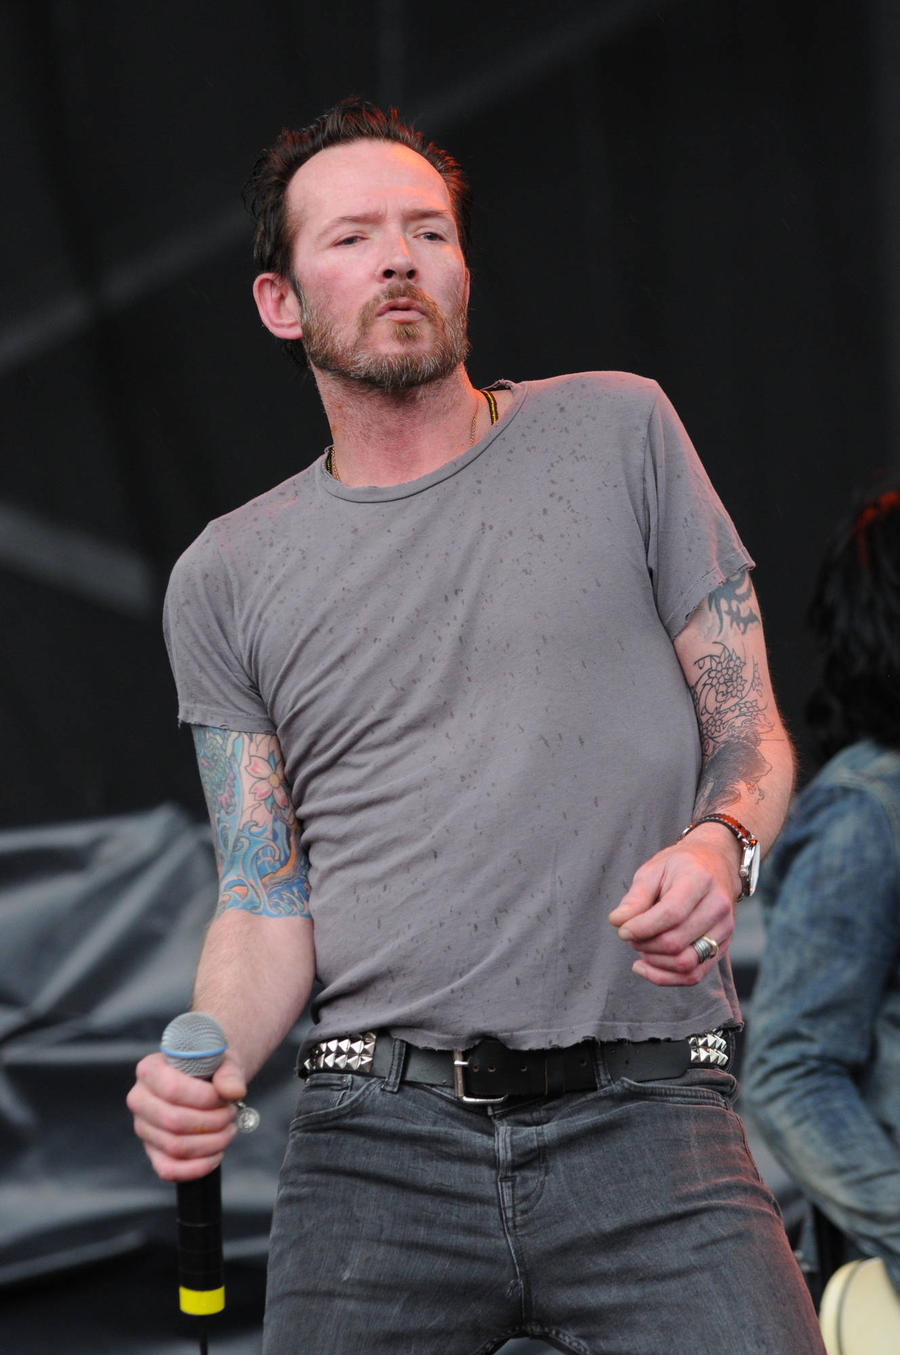 Scott Weiland's Ex-wife In Brush With Police